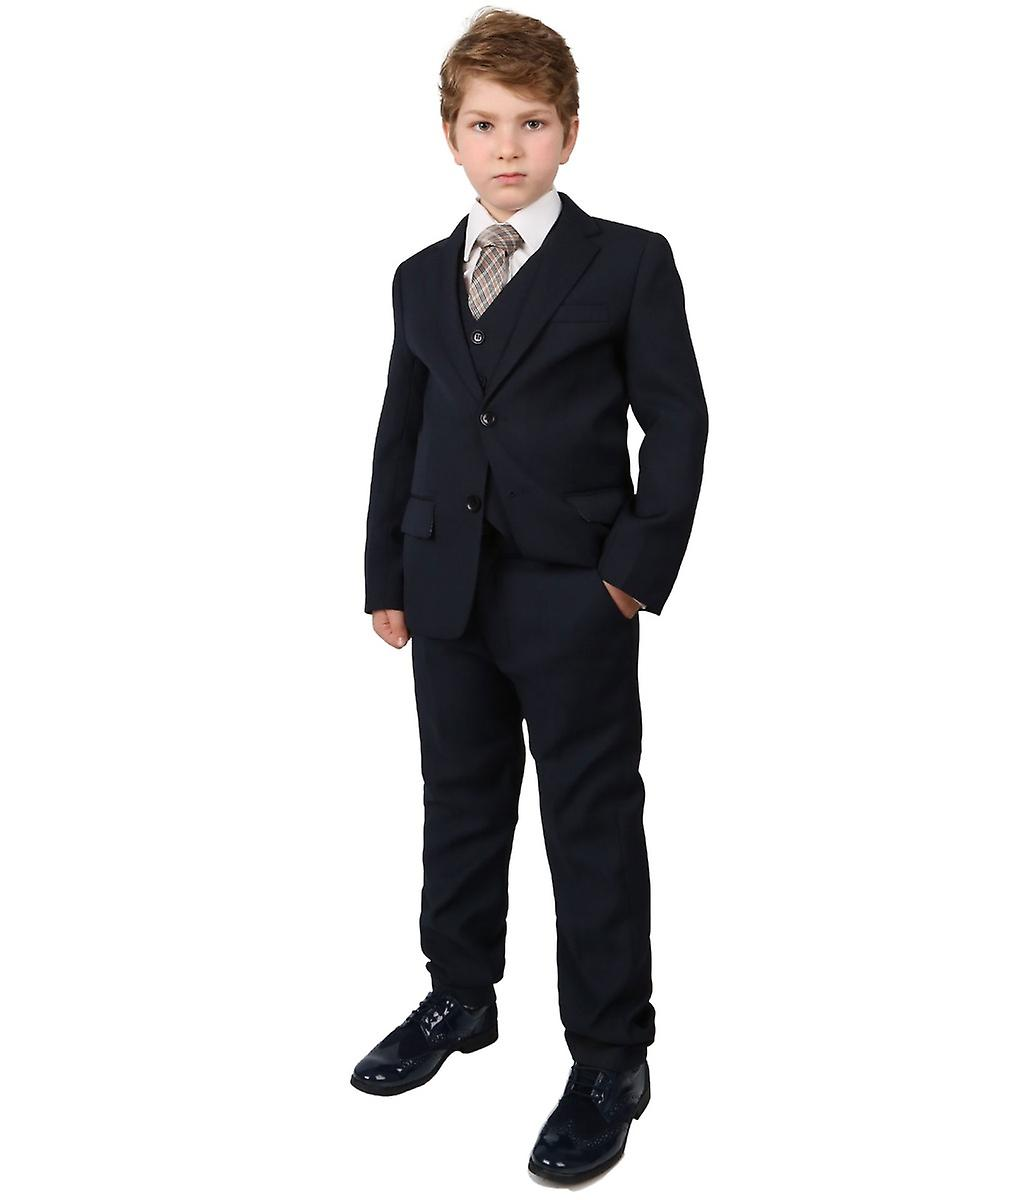 Boys Regular Italian Fit Navy Blue Wedding Prom Suit with Shirt and Tie